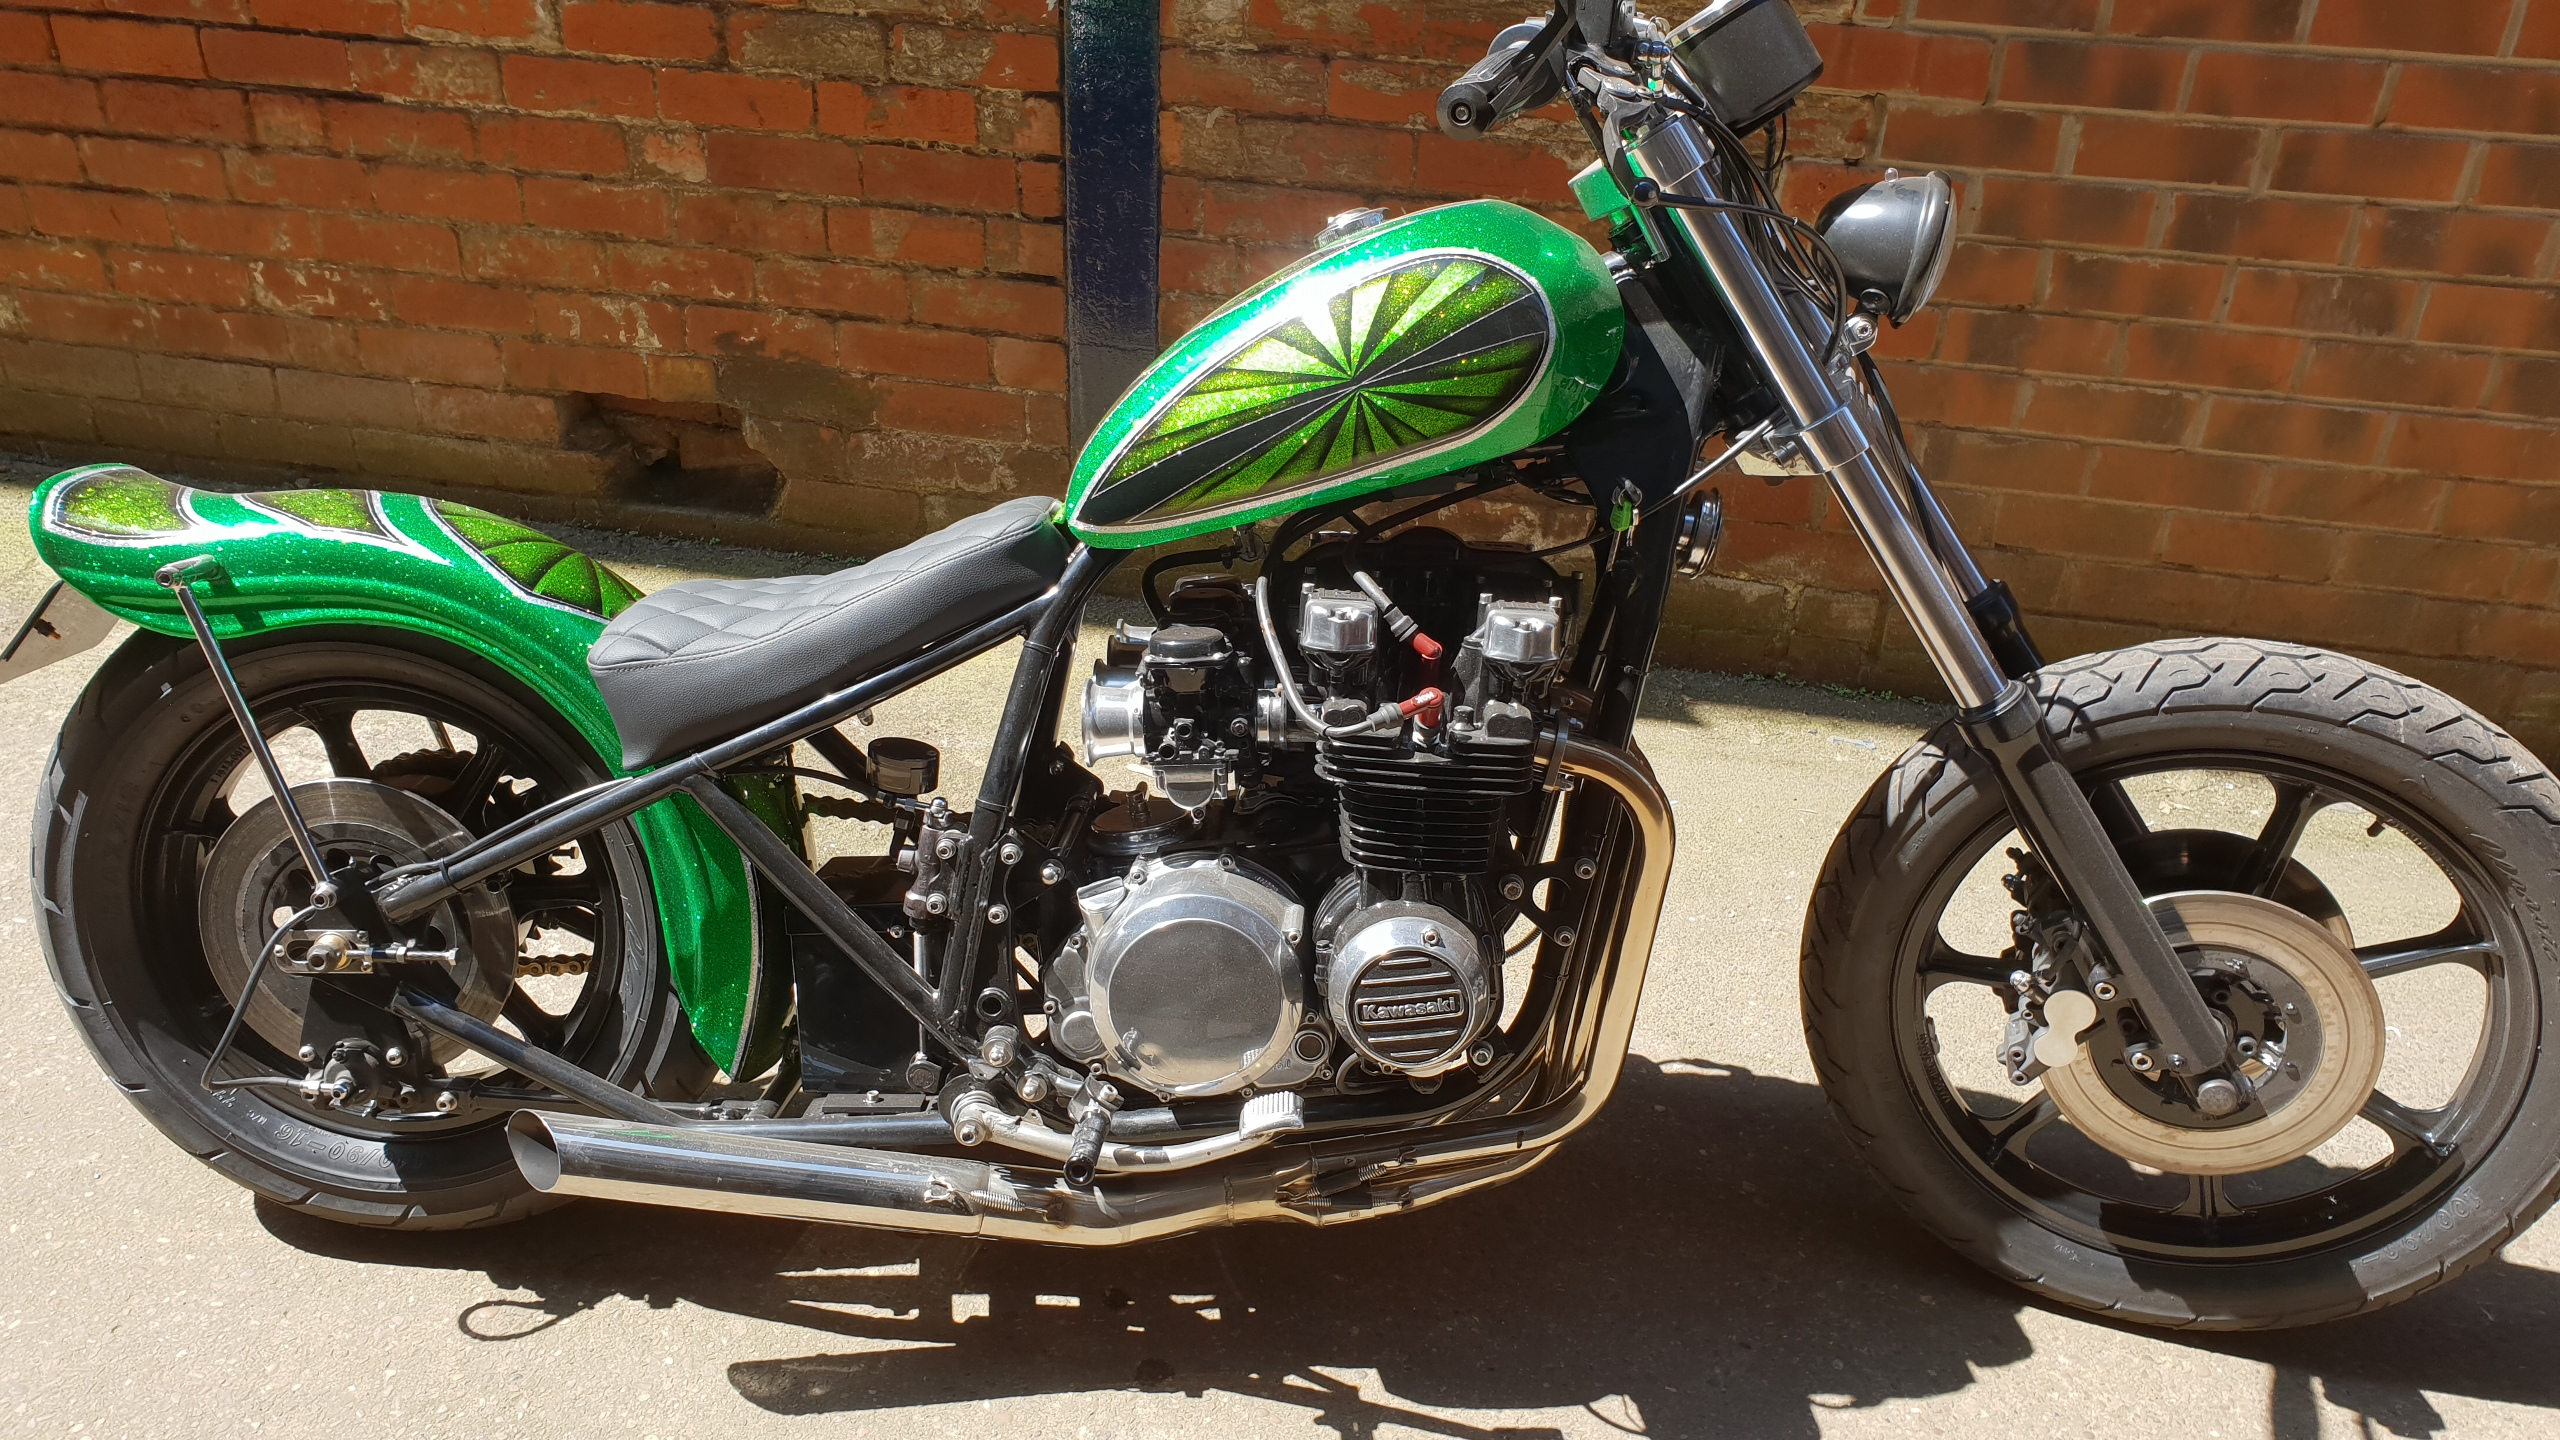 KAWASAKI Z650 CHOP FINISHED IN CANDY GREEN